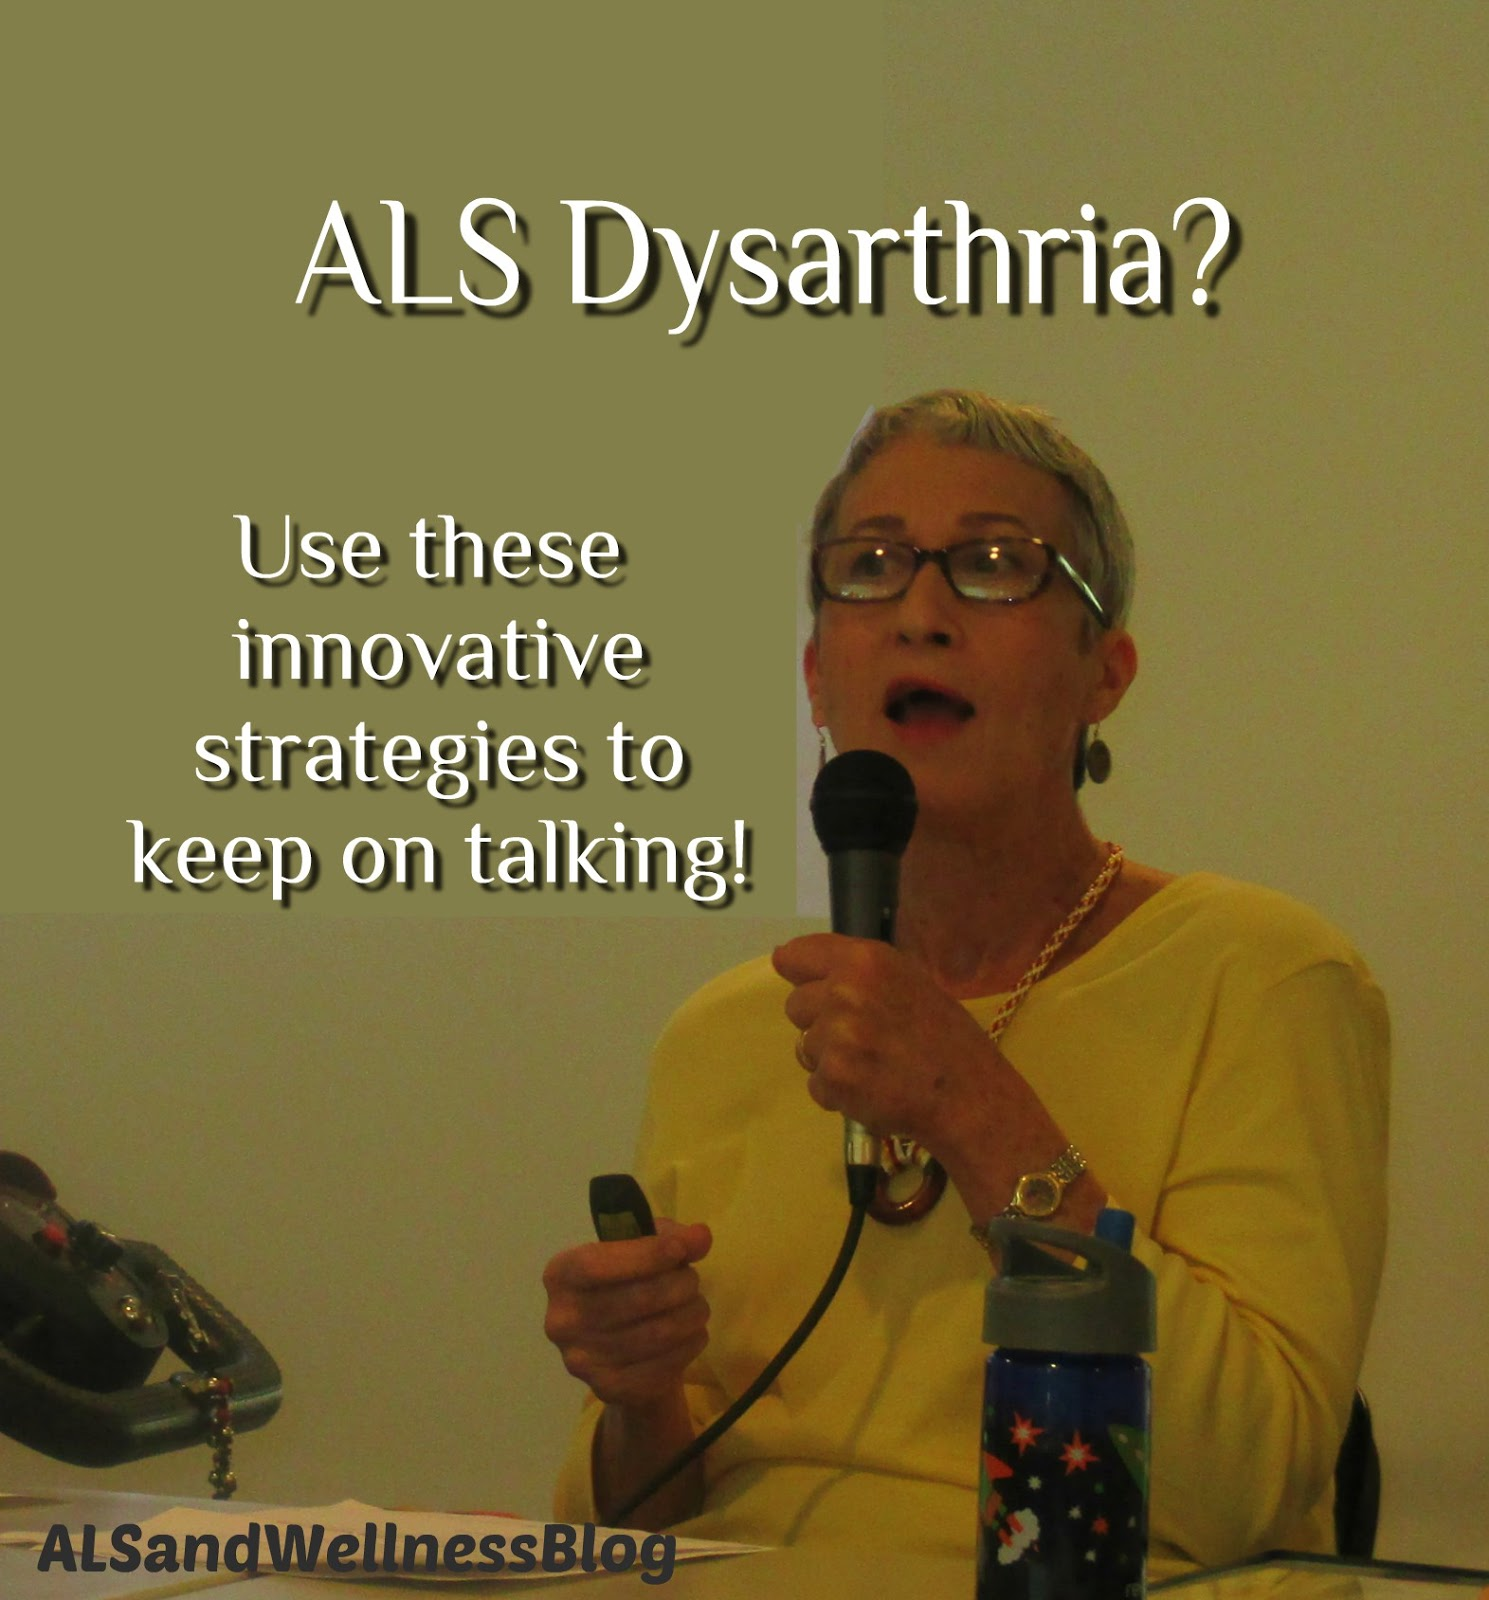 ALS and Wellness Blog: ALS Dysarthria? Use These Innovative